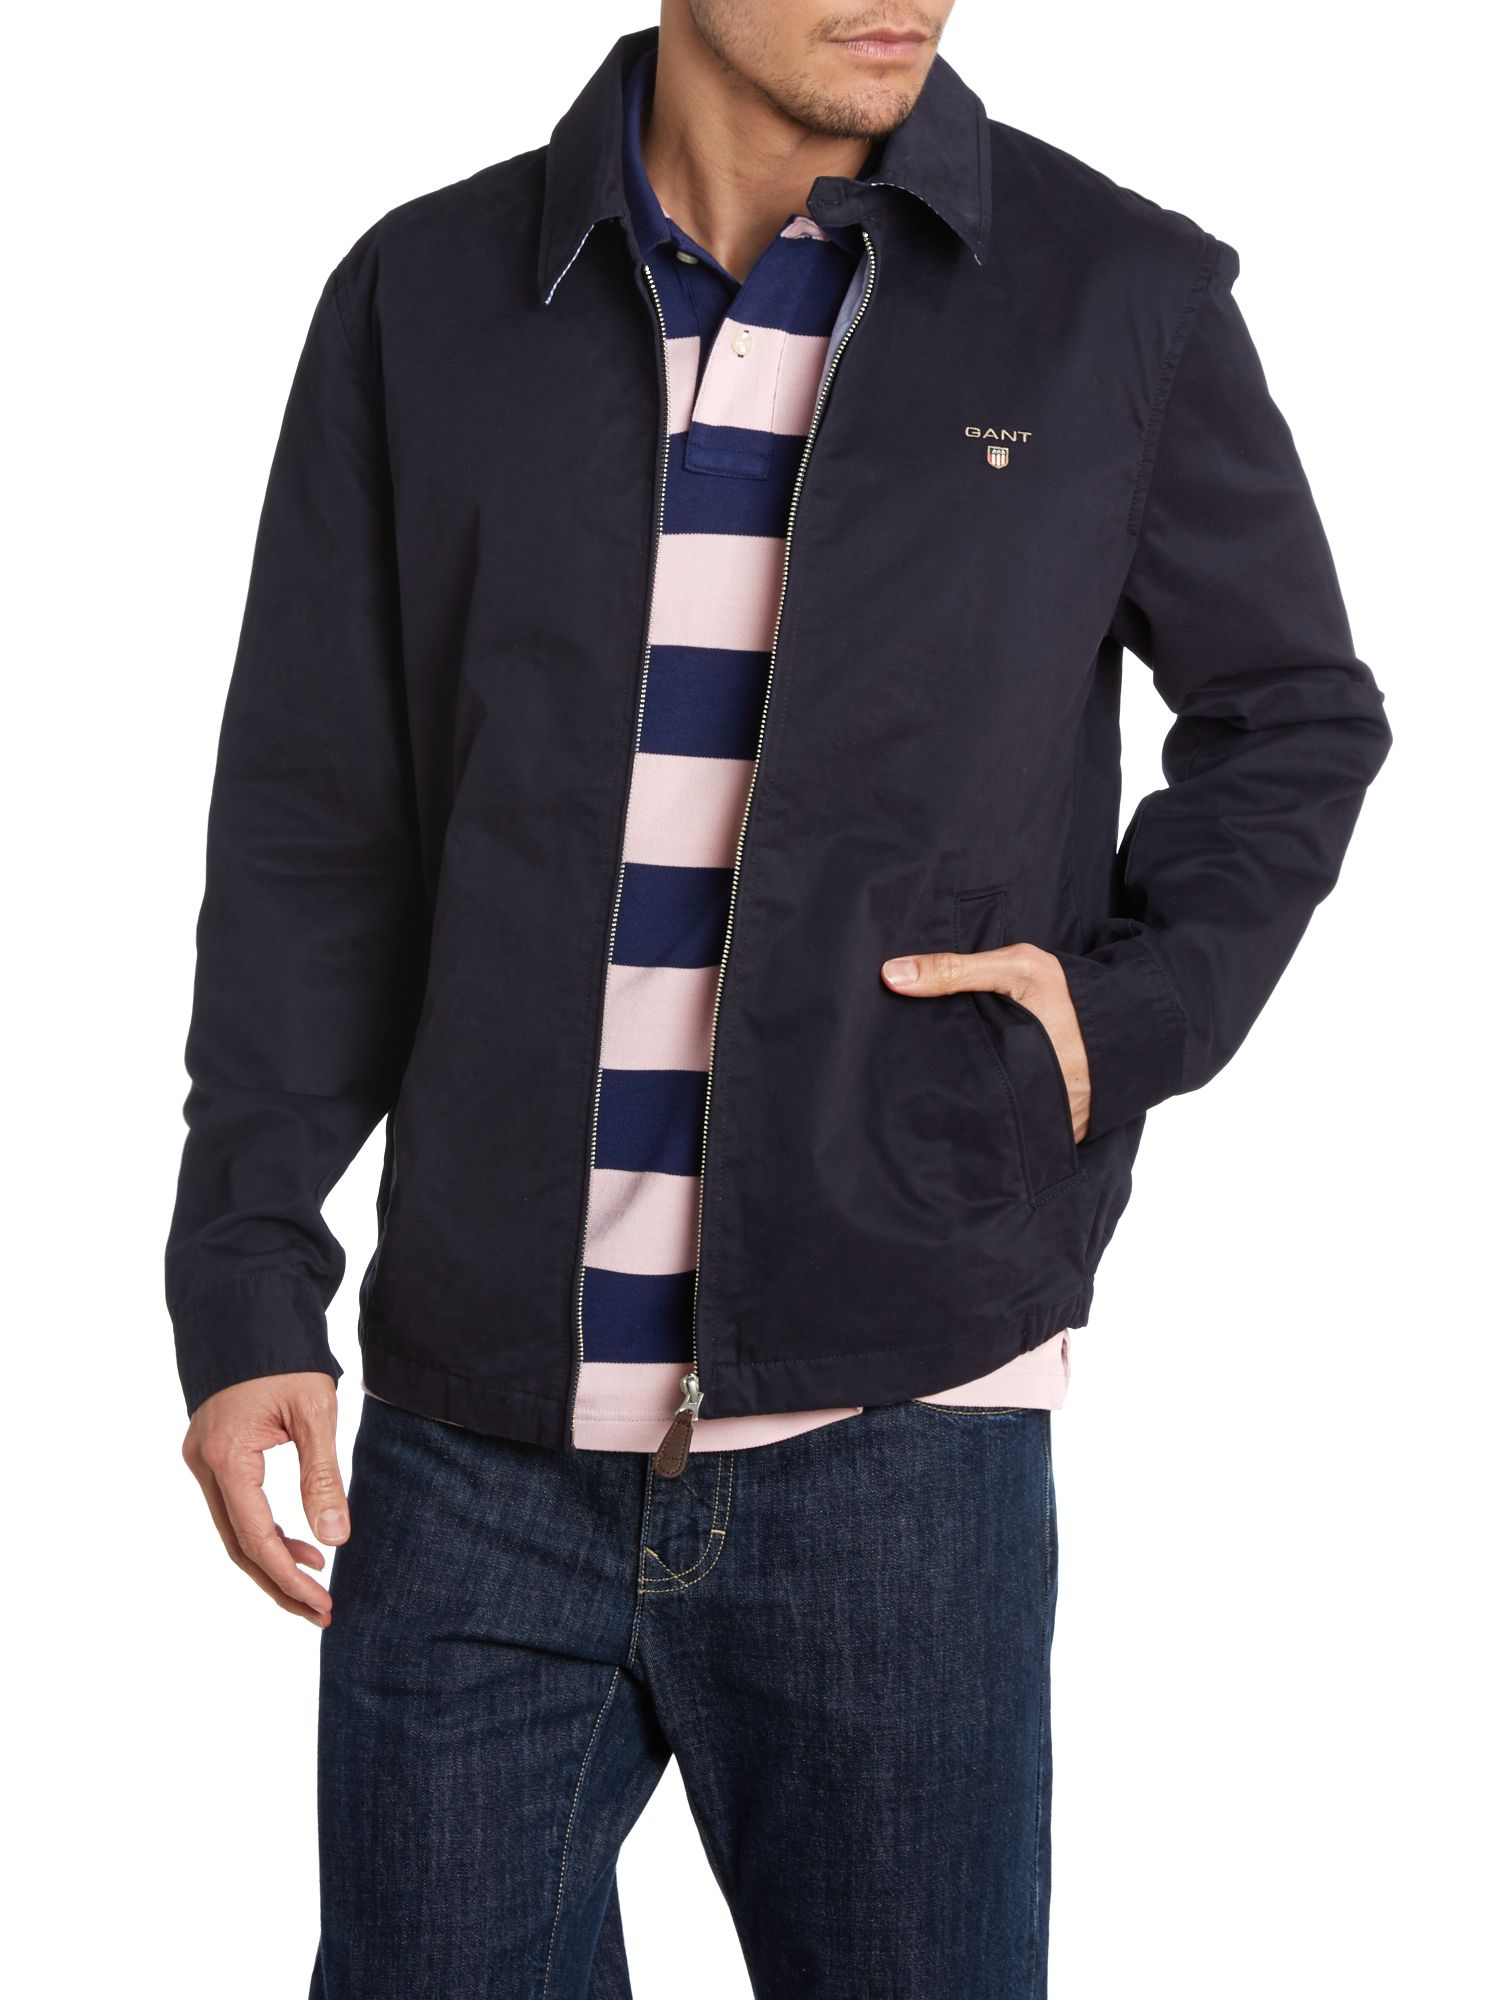 The windcheater jacket